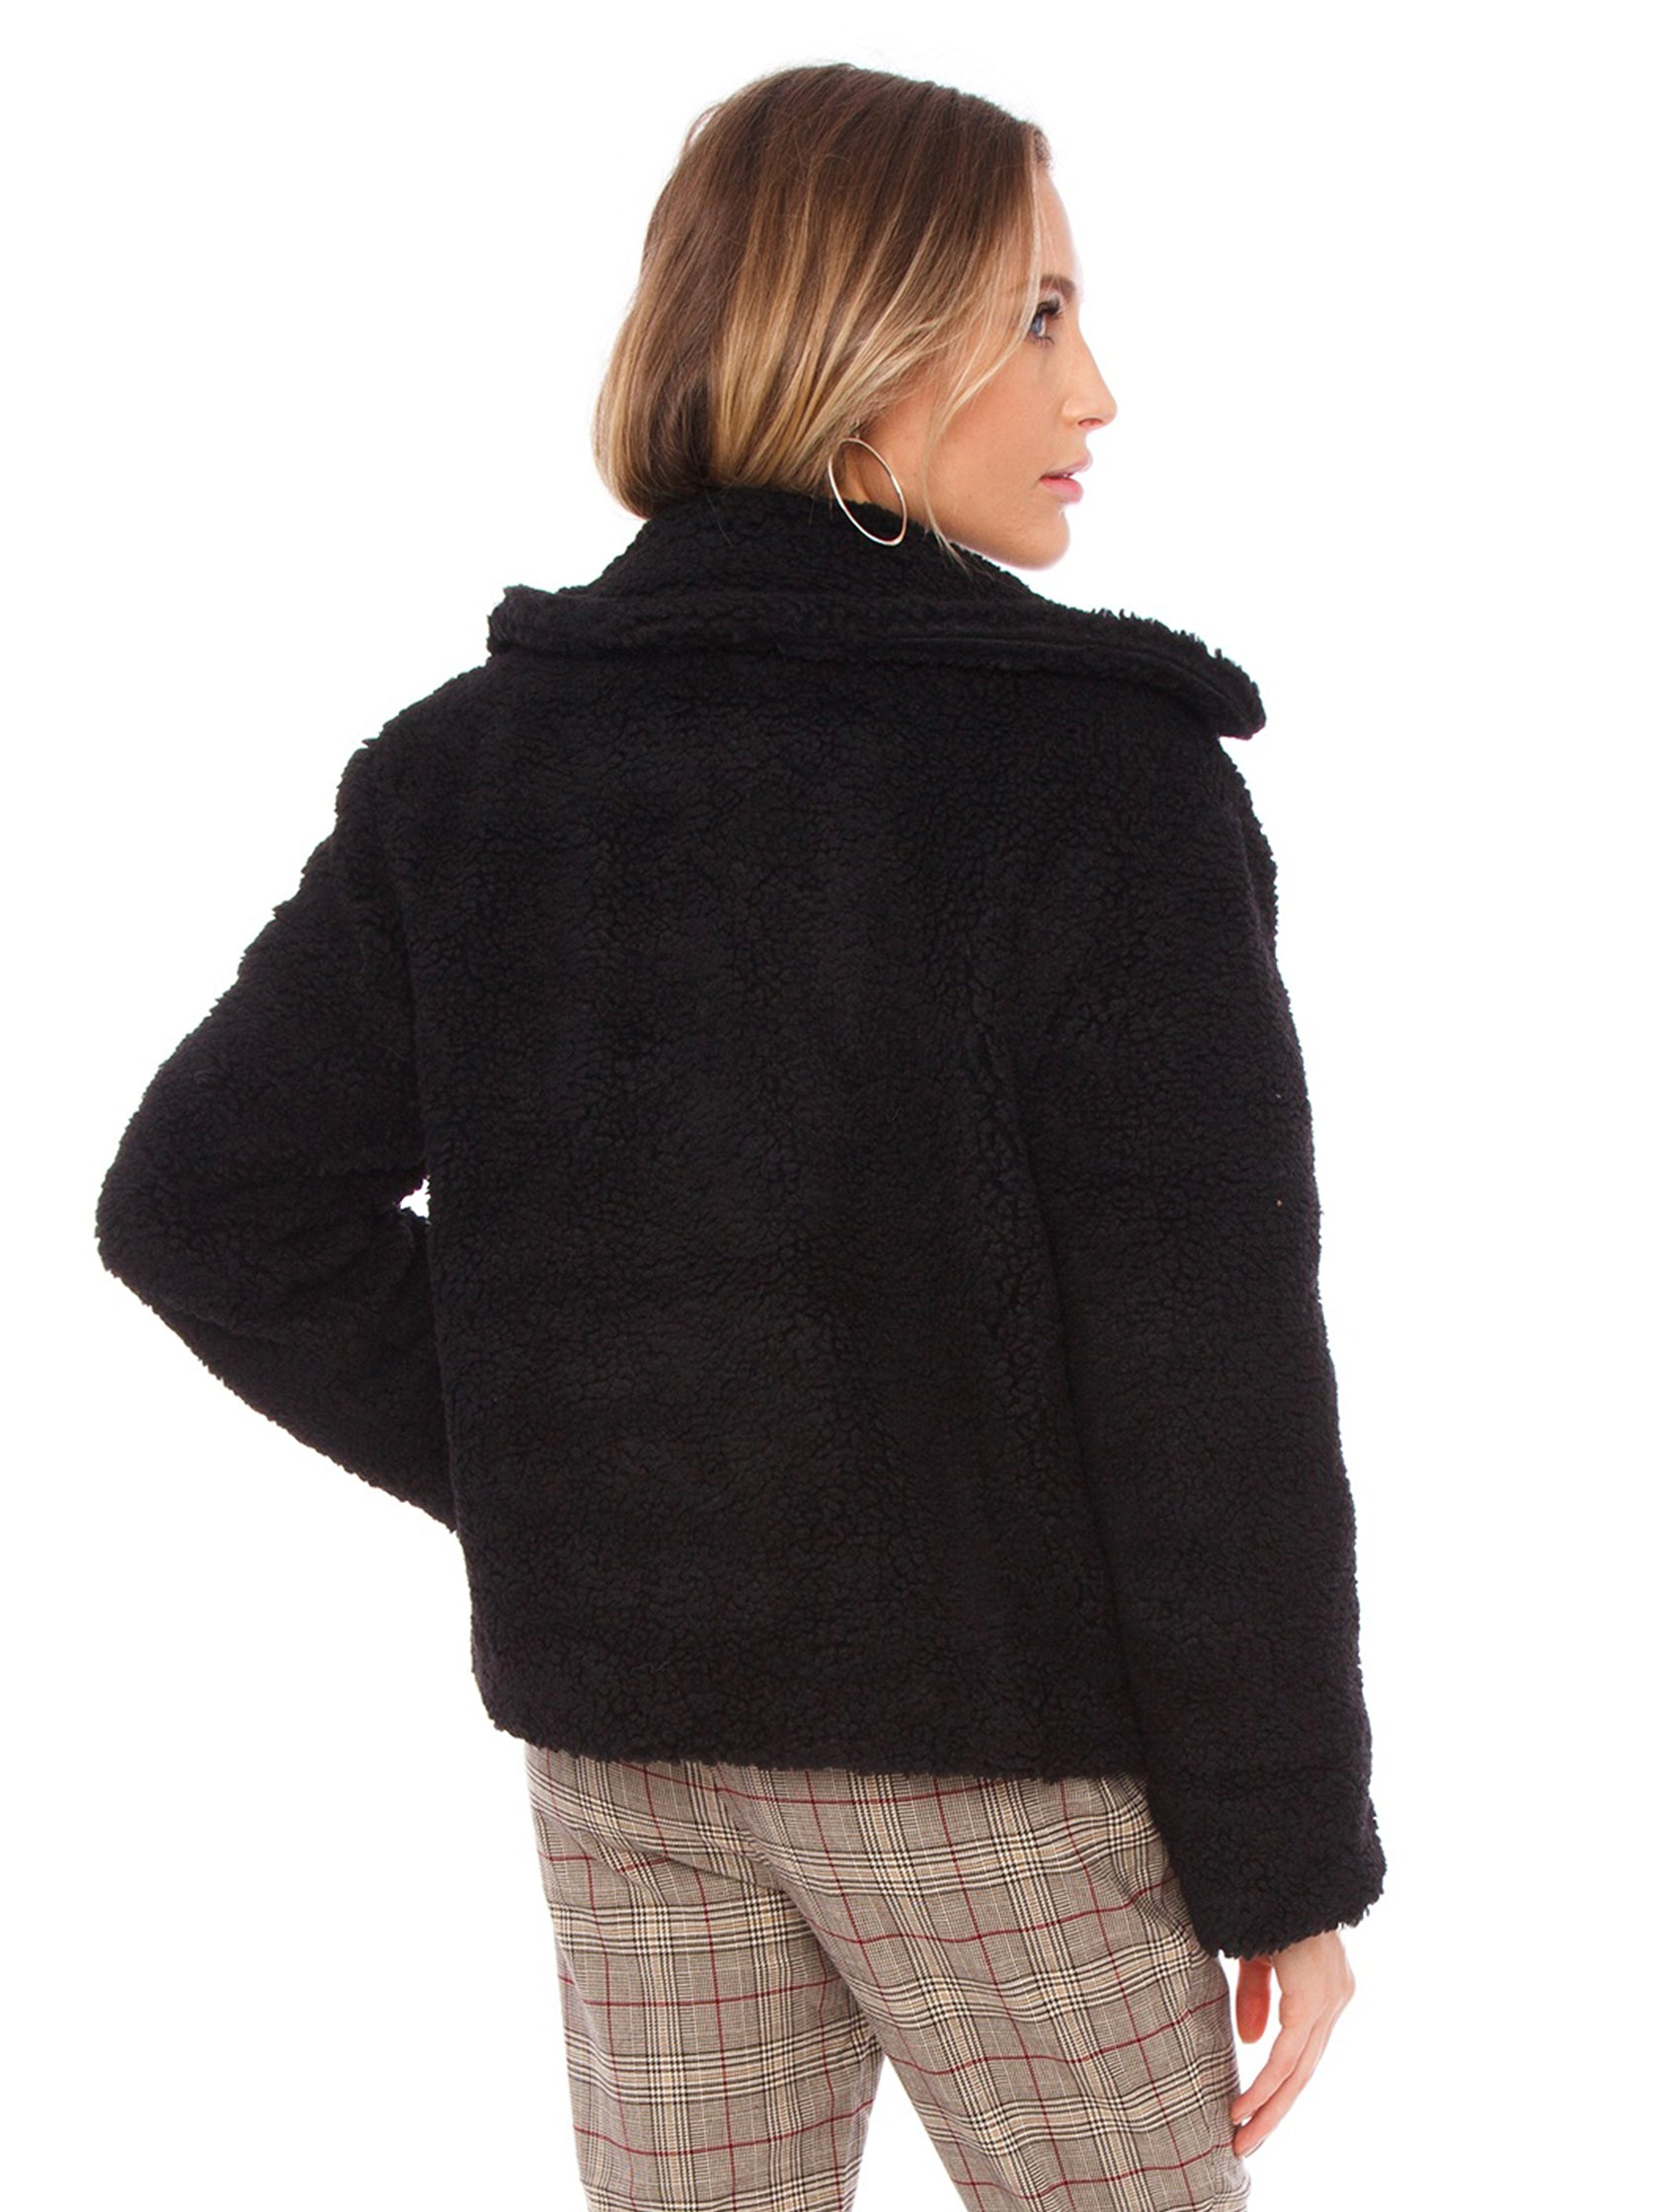 Women wearing a jacket rental from J.O.A. called Teddy Faux Fur Jacket